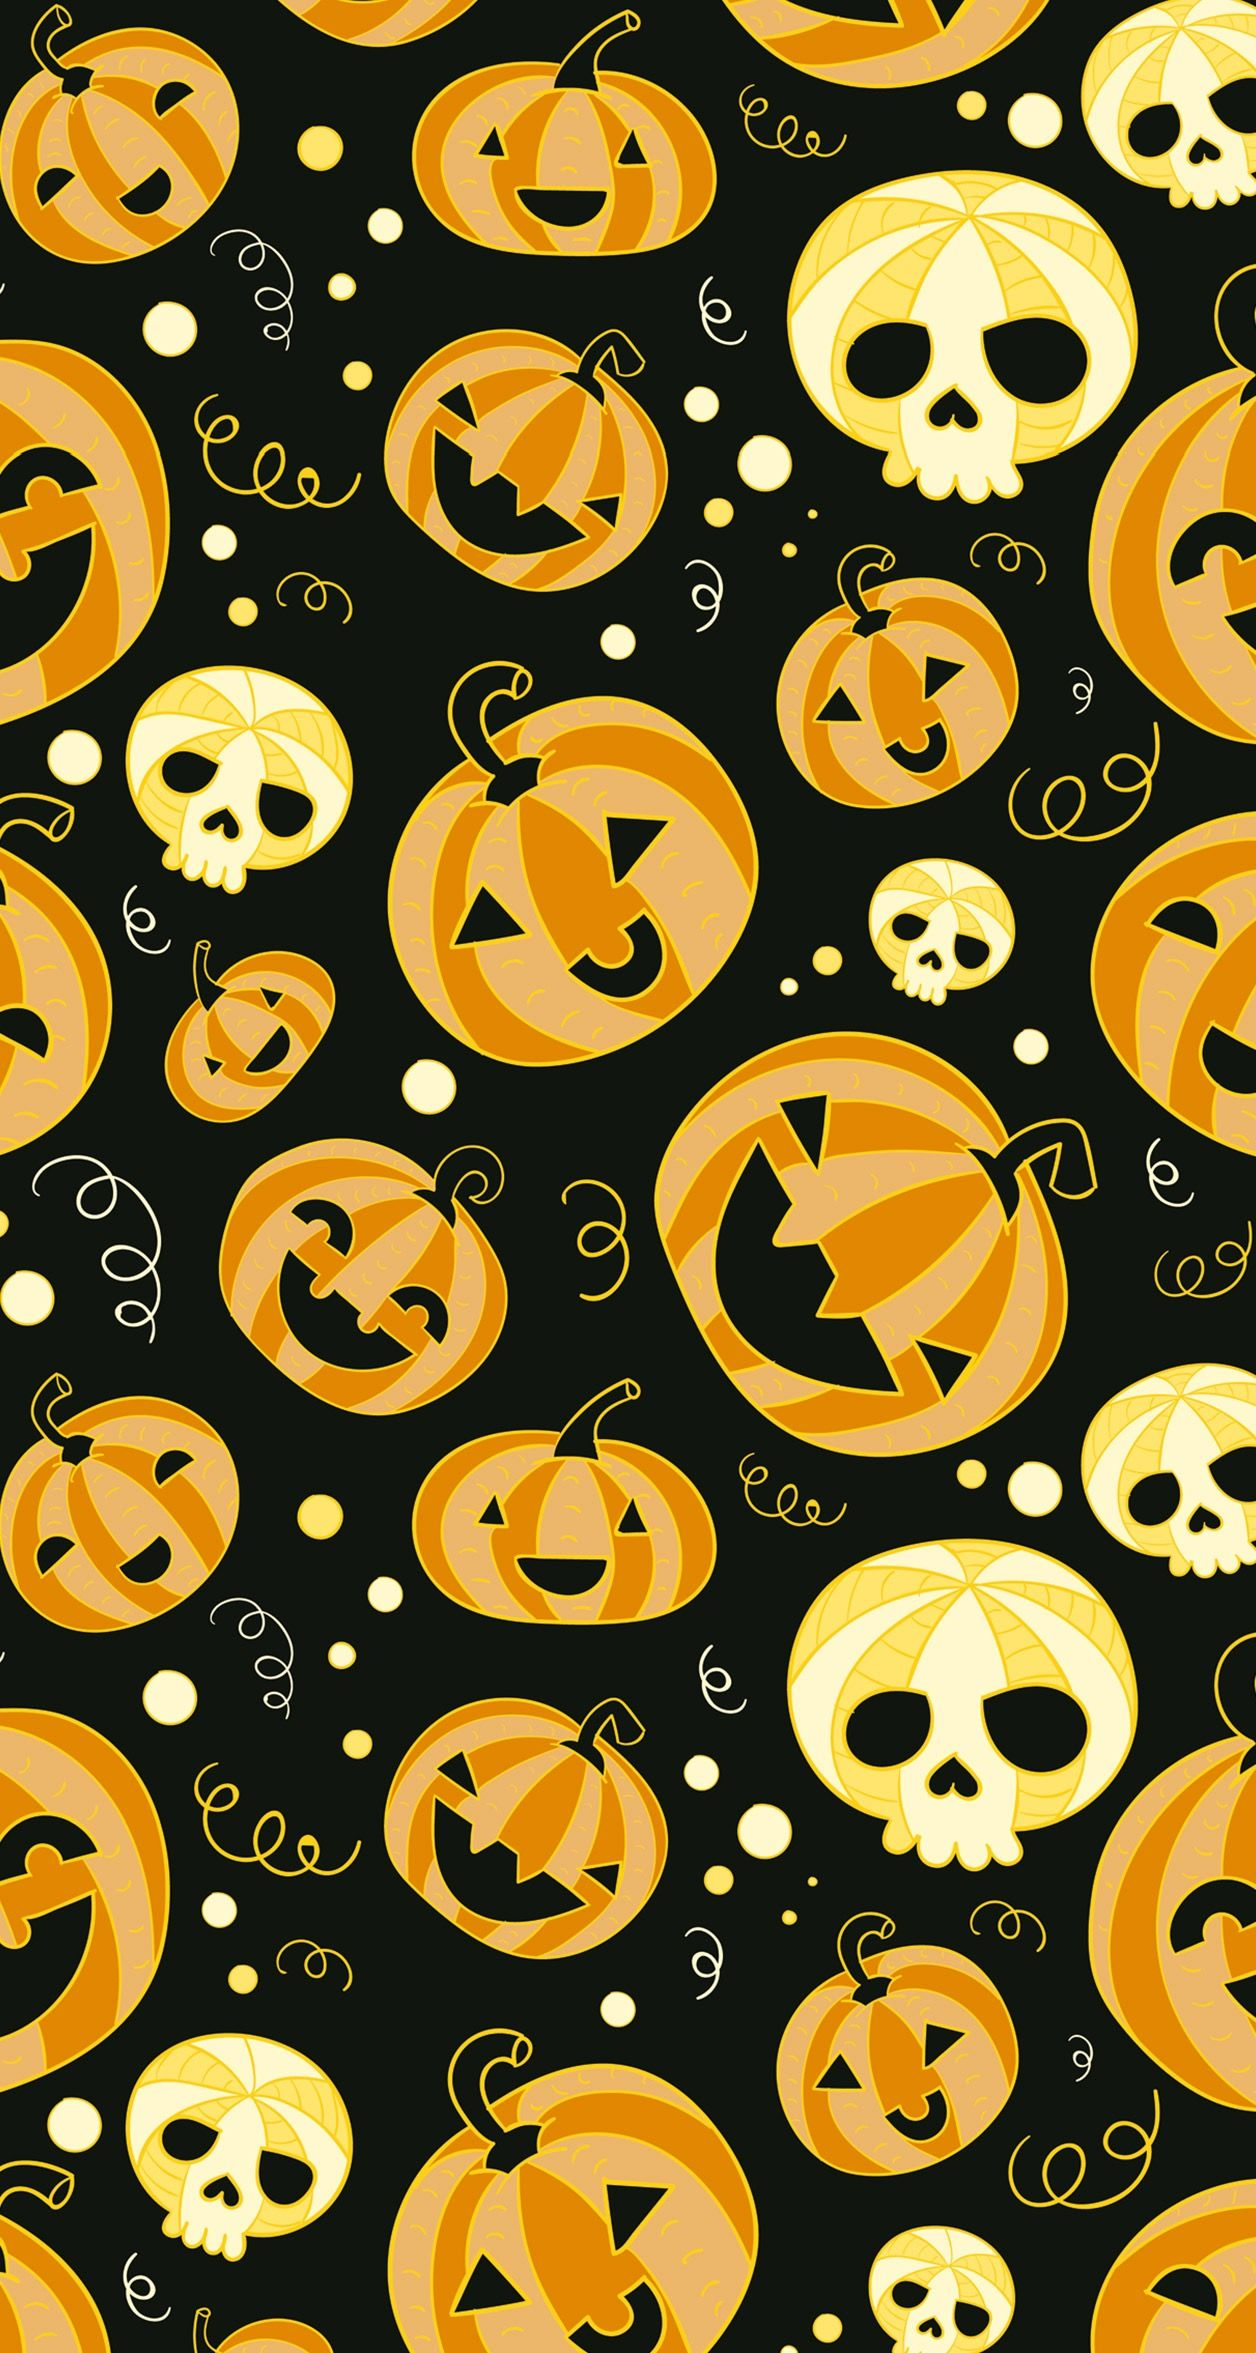 Popular Wallpaper Halloween Mobile Phone - 1a4dbe7ea177a1f2c2345be756667ca9  Perfect Image Reference_458945.jpg